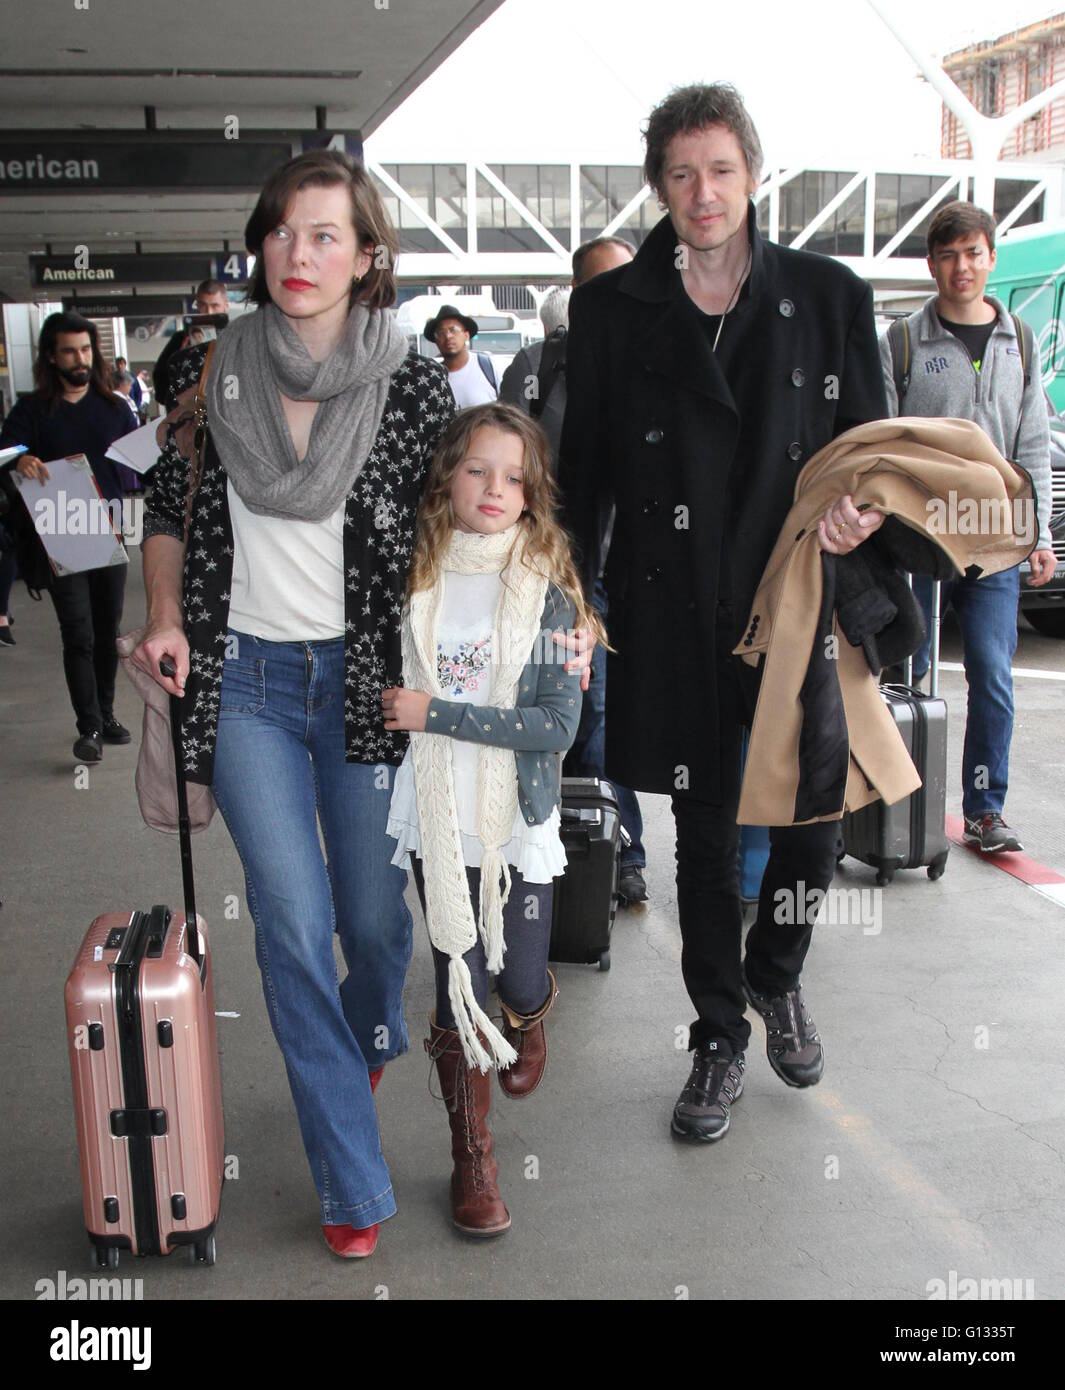 Milla Jovovich with Paul W. S. Anderson and daughter Ever Gabo Anderson at Los Angeles International Airport (LAX)  Featuring: Milla Jovovich, Paul W. S. Anderson, Ever Gabo Anderson Where: Los Angeles, California, United States When: 07 Apr 2016